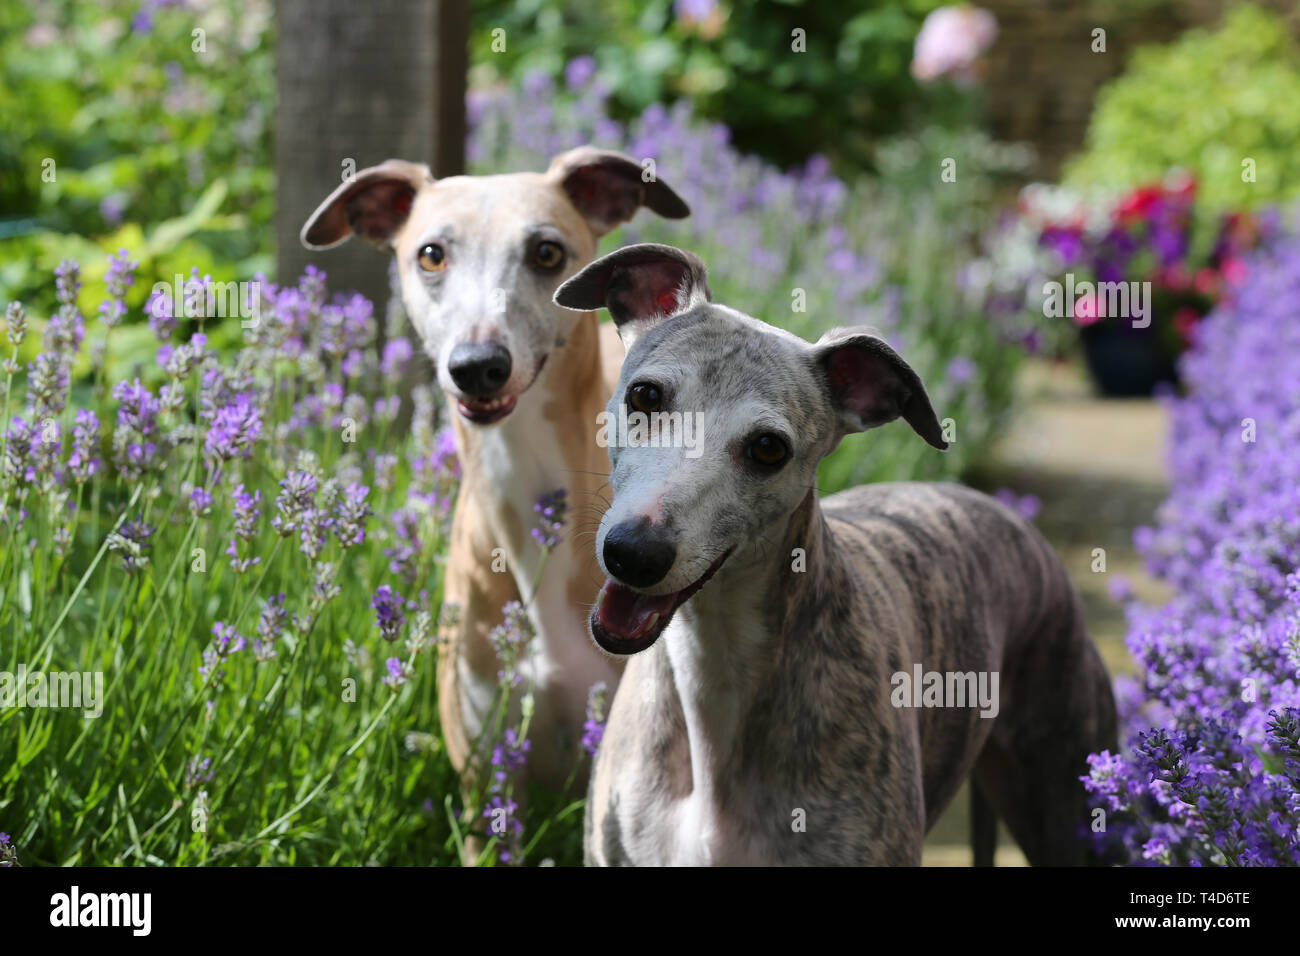 6706ca45a0b0c Fawn Whippet Stock Photos   Fawn Whippet Stock Images - Alamy